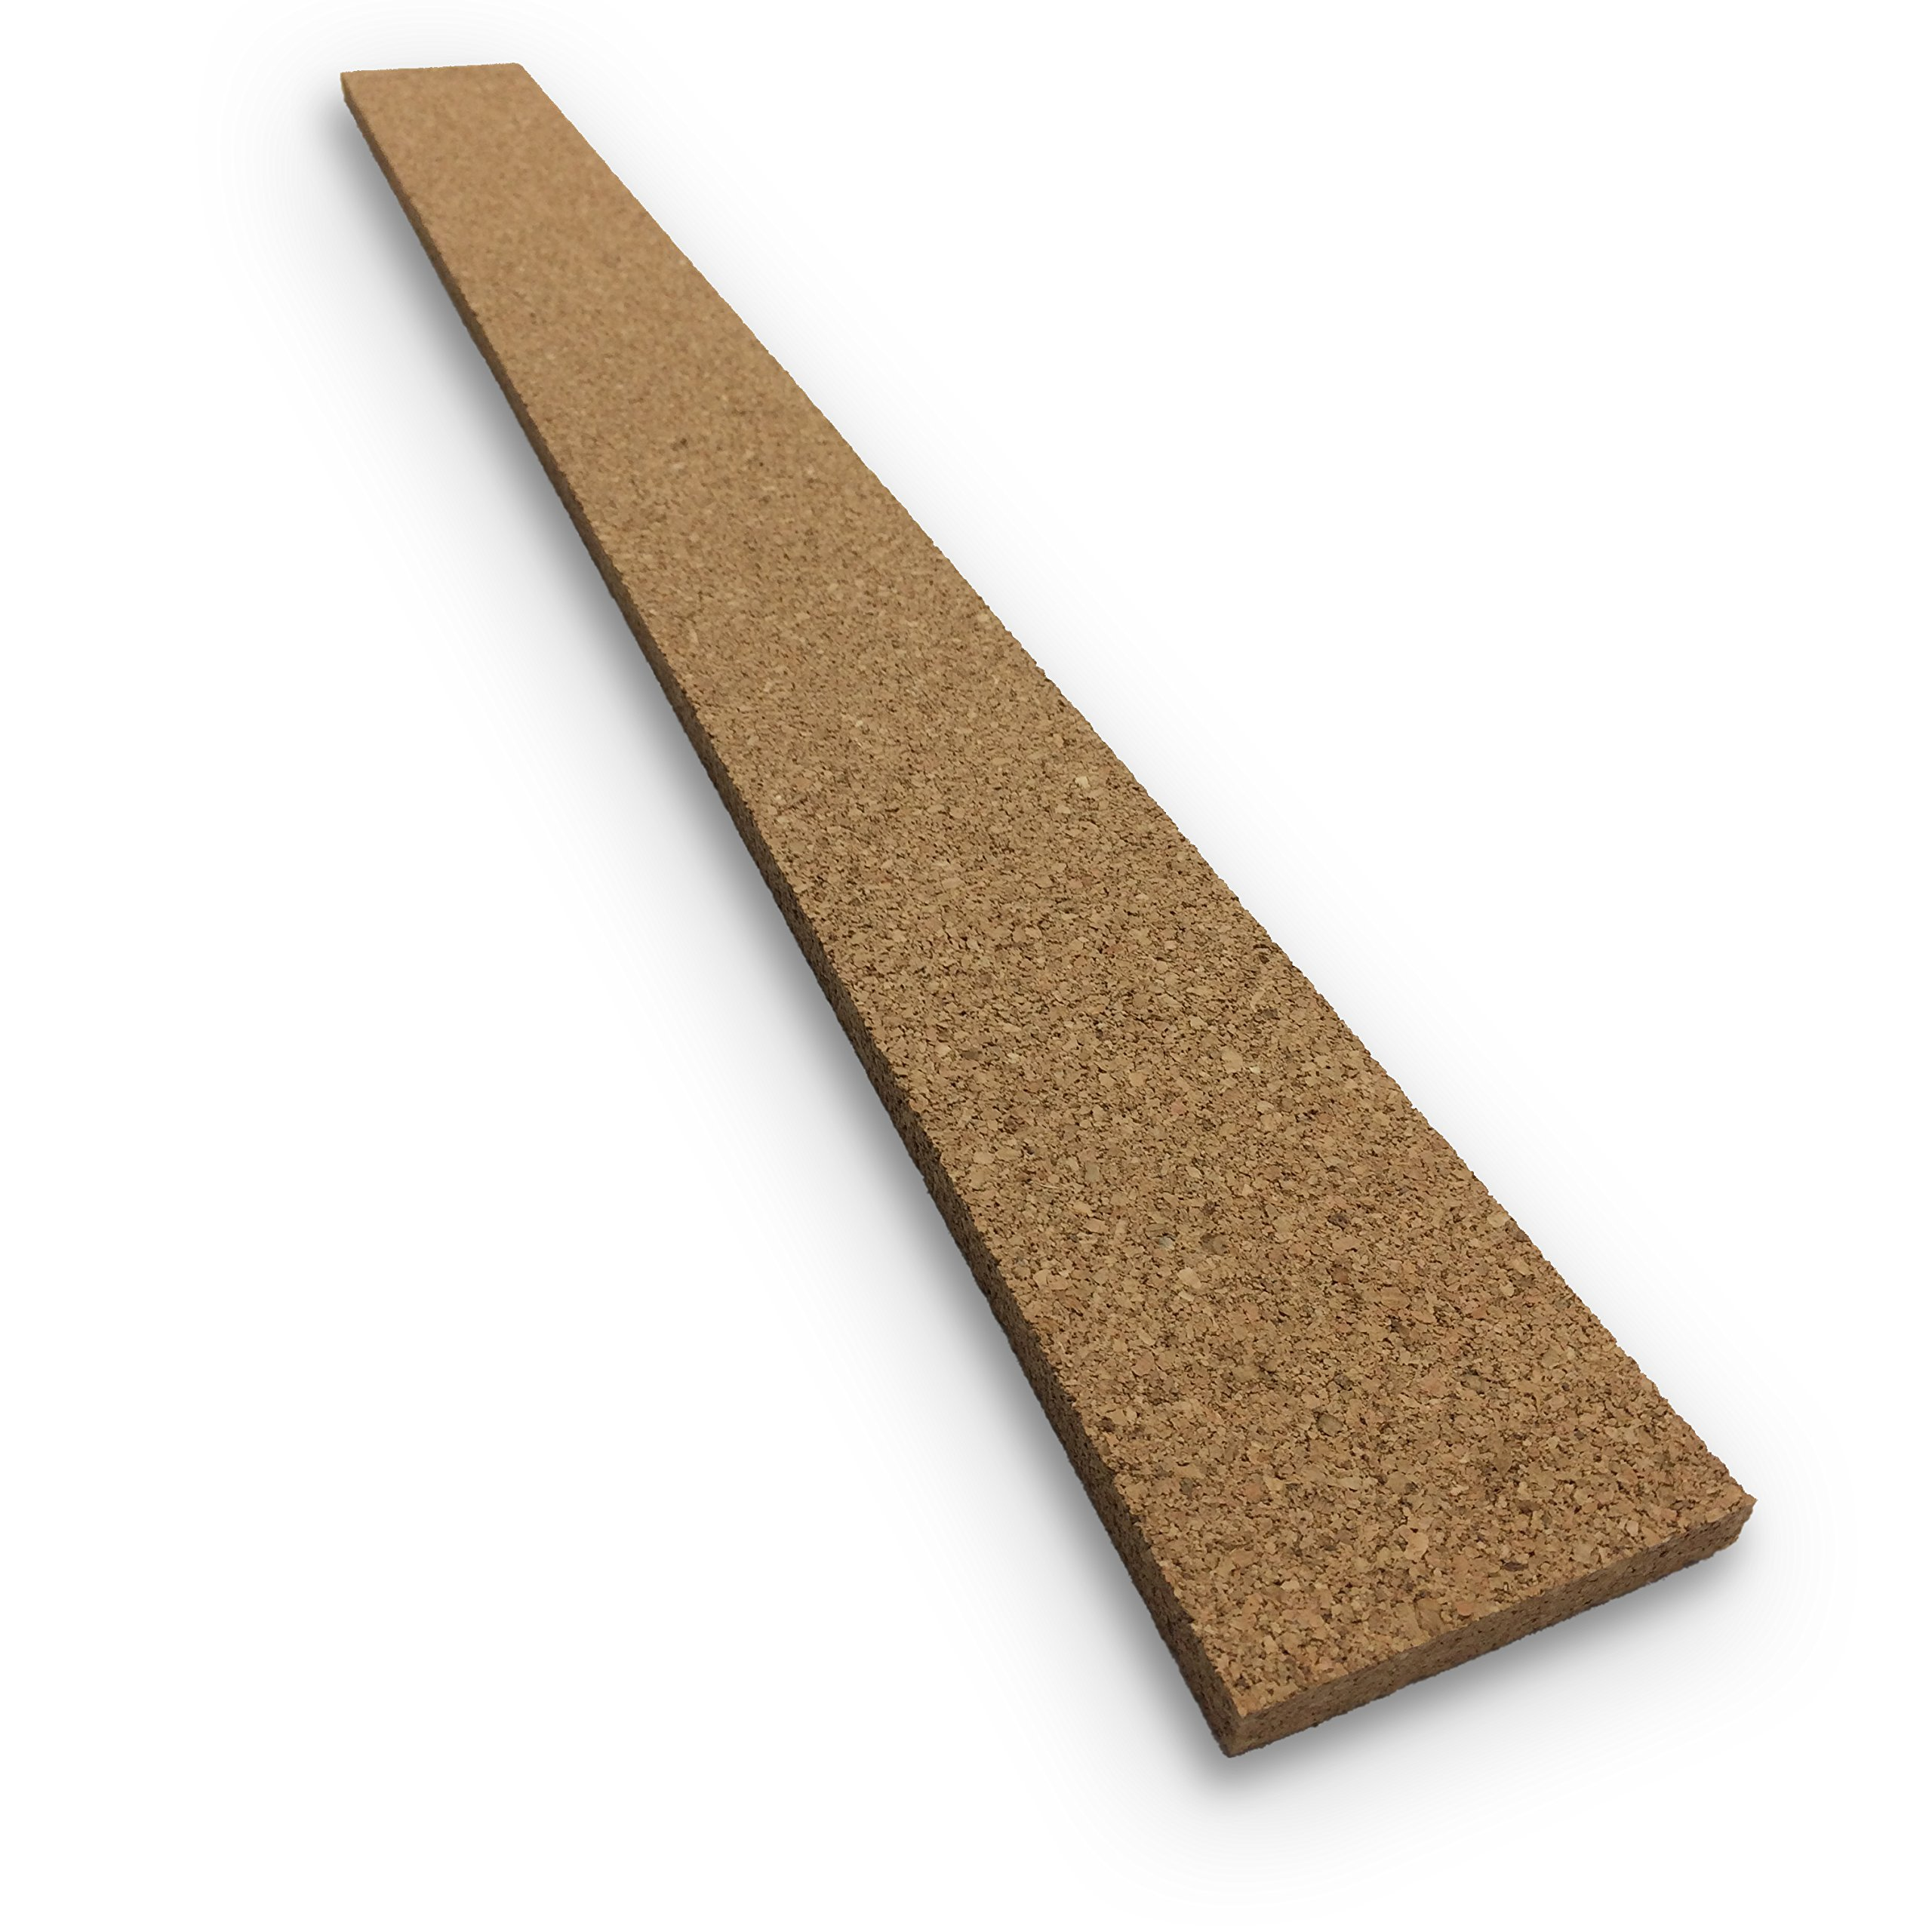 Thick Multi Purpose Cork Strips (8 Pack) Classroom Bulletin Board Bar 36x3.5x0.5 Inches